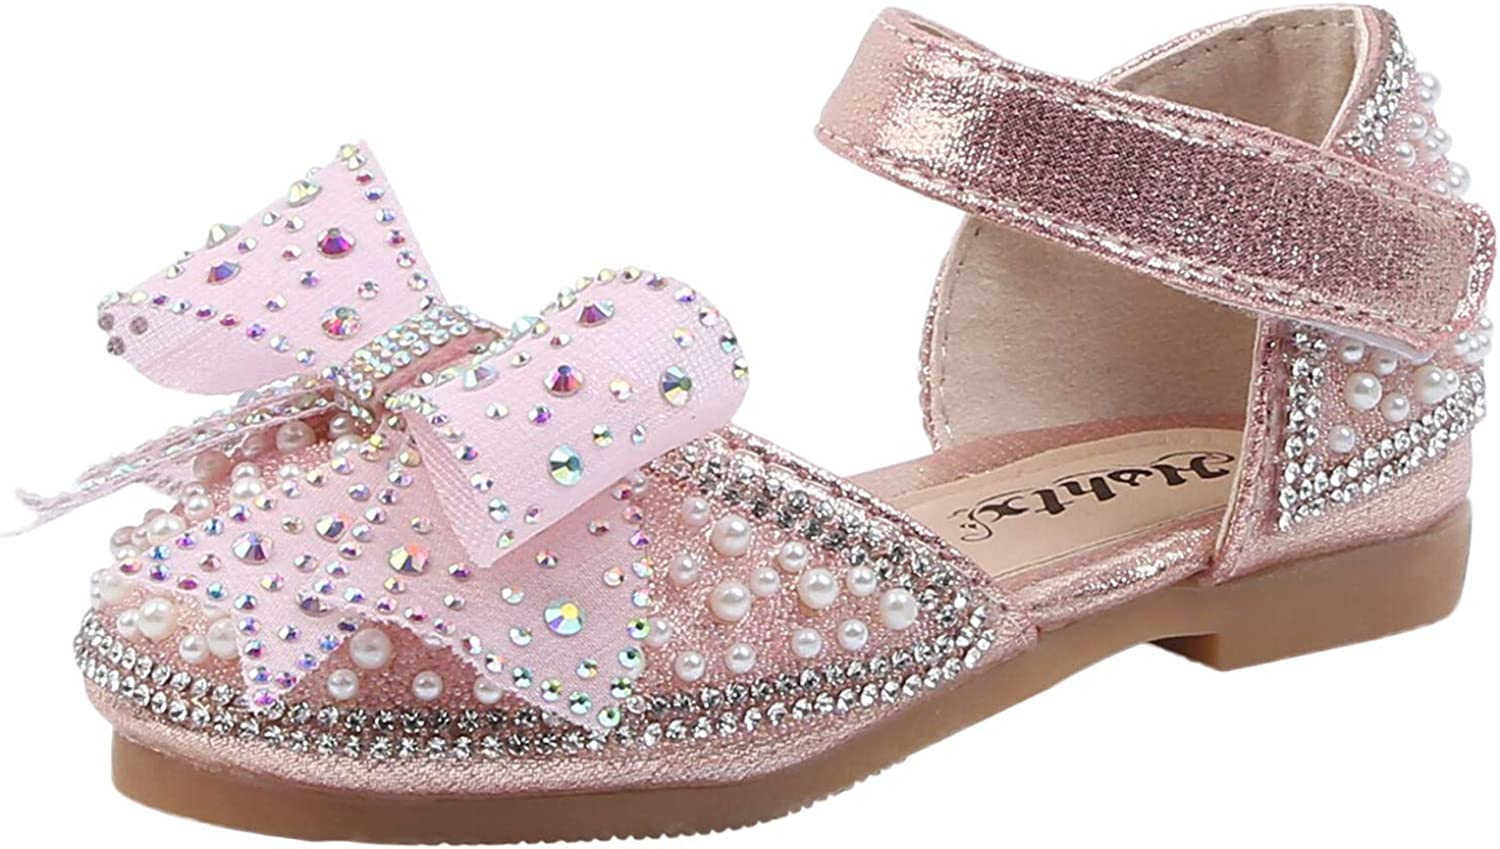 Toddler Kids Girls Kansas City Mall Ballet Flats Selling and selling Sweet Shoe Crystal Bowknot Shoes